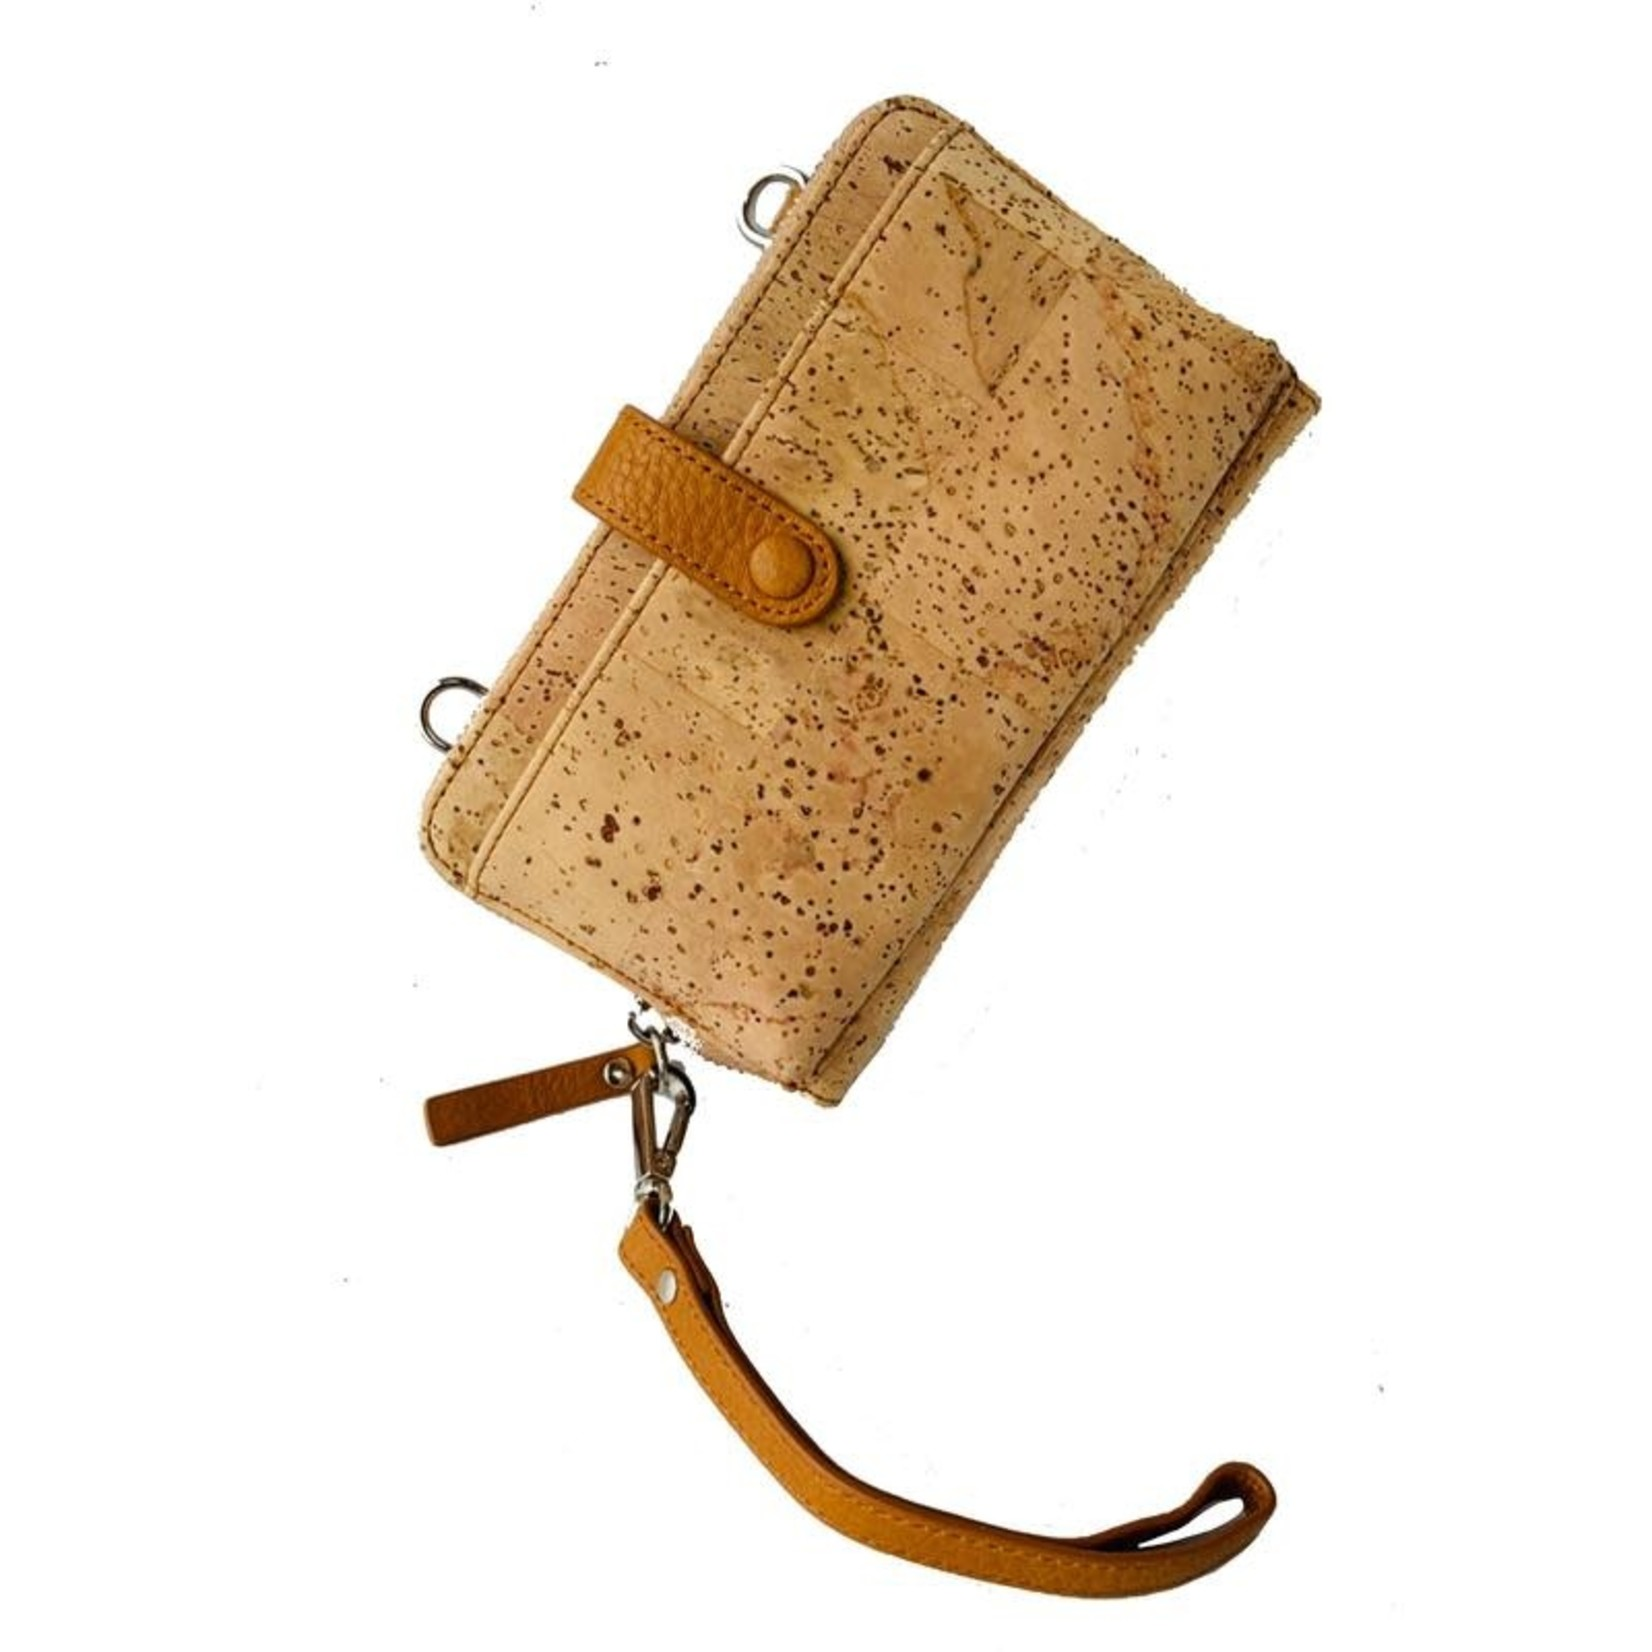 Queork Natural Cork Wallet w/ Silver Hardware and Leather Trim